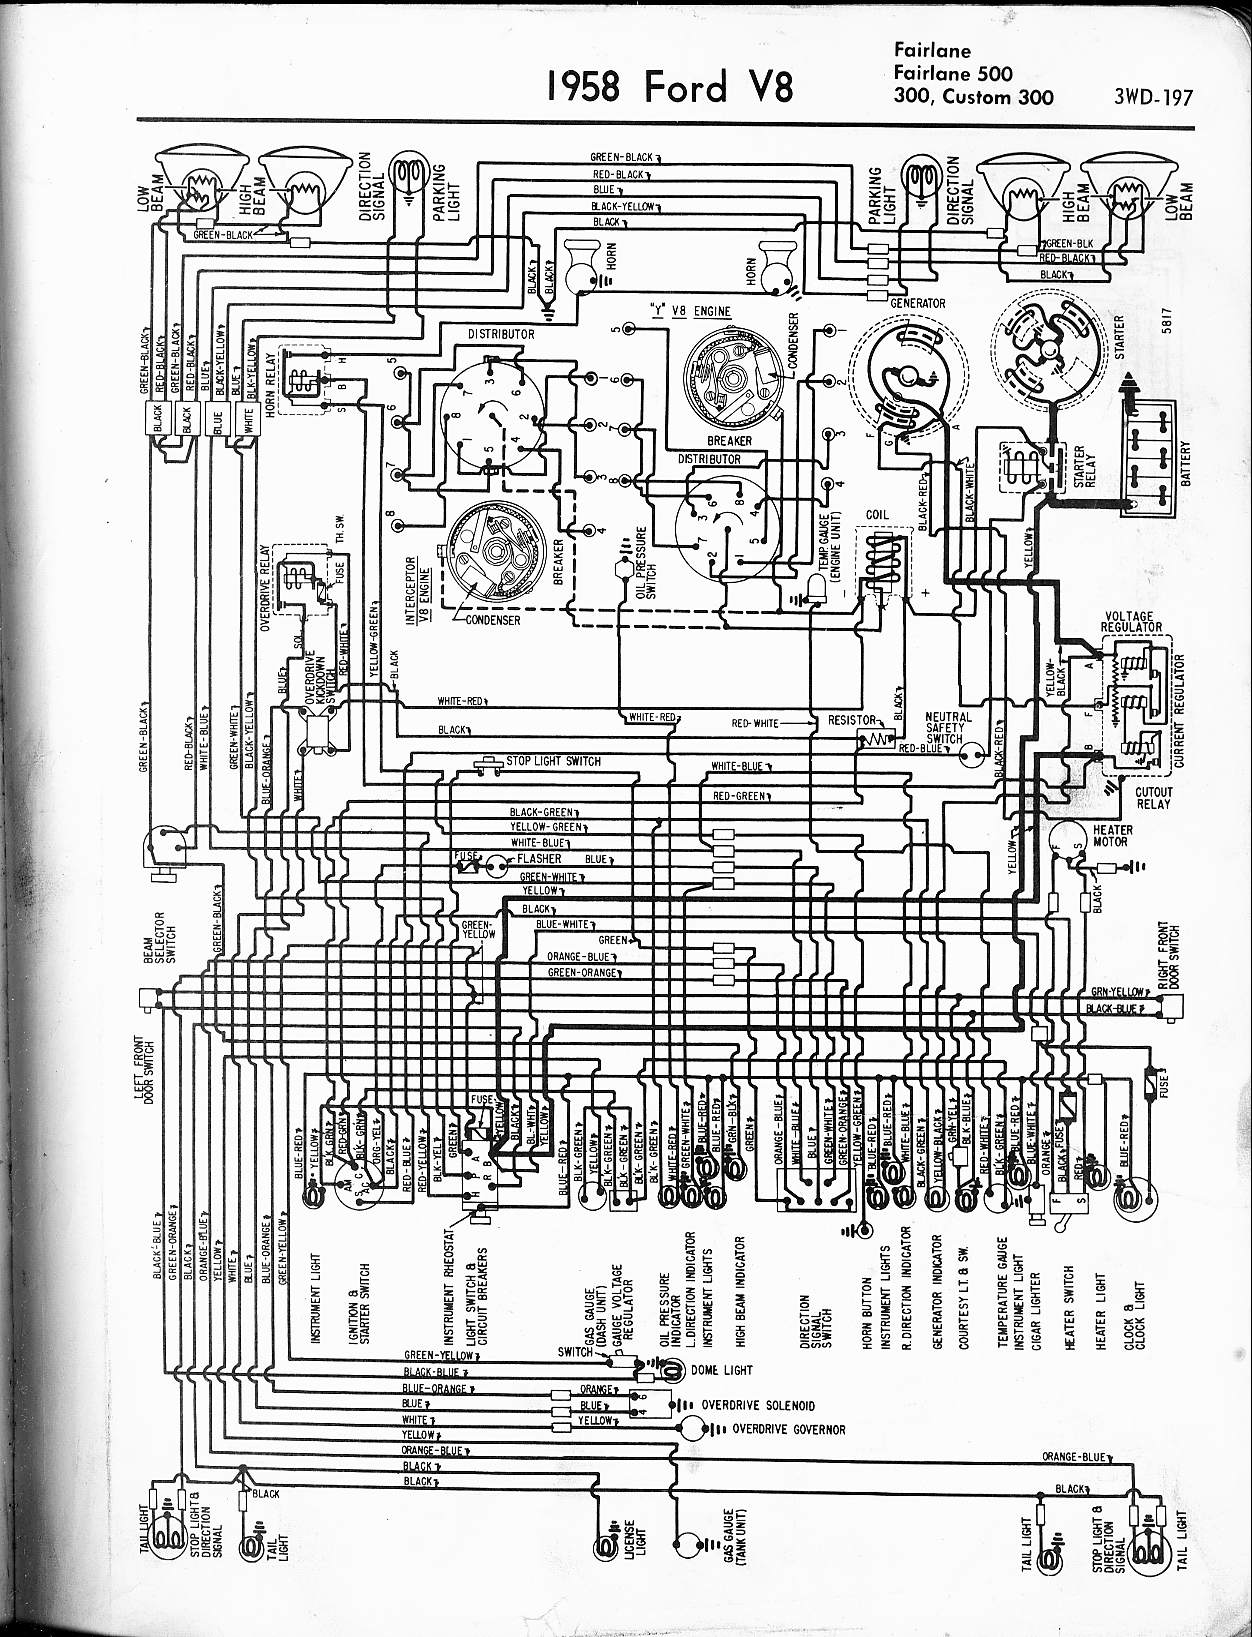 Color Wiring Diagram 1961 Ford Galaxie Schematic F100 1966 Third Levelcolor